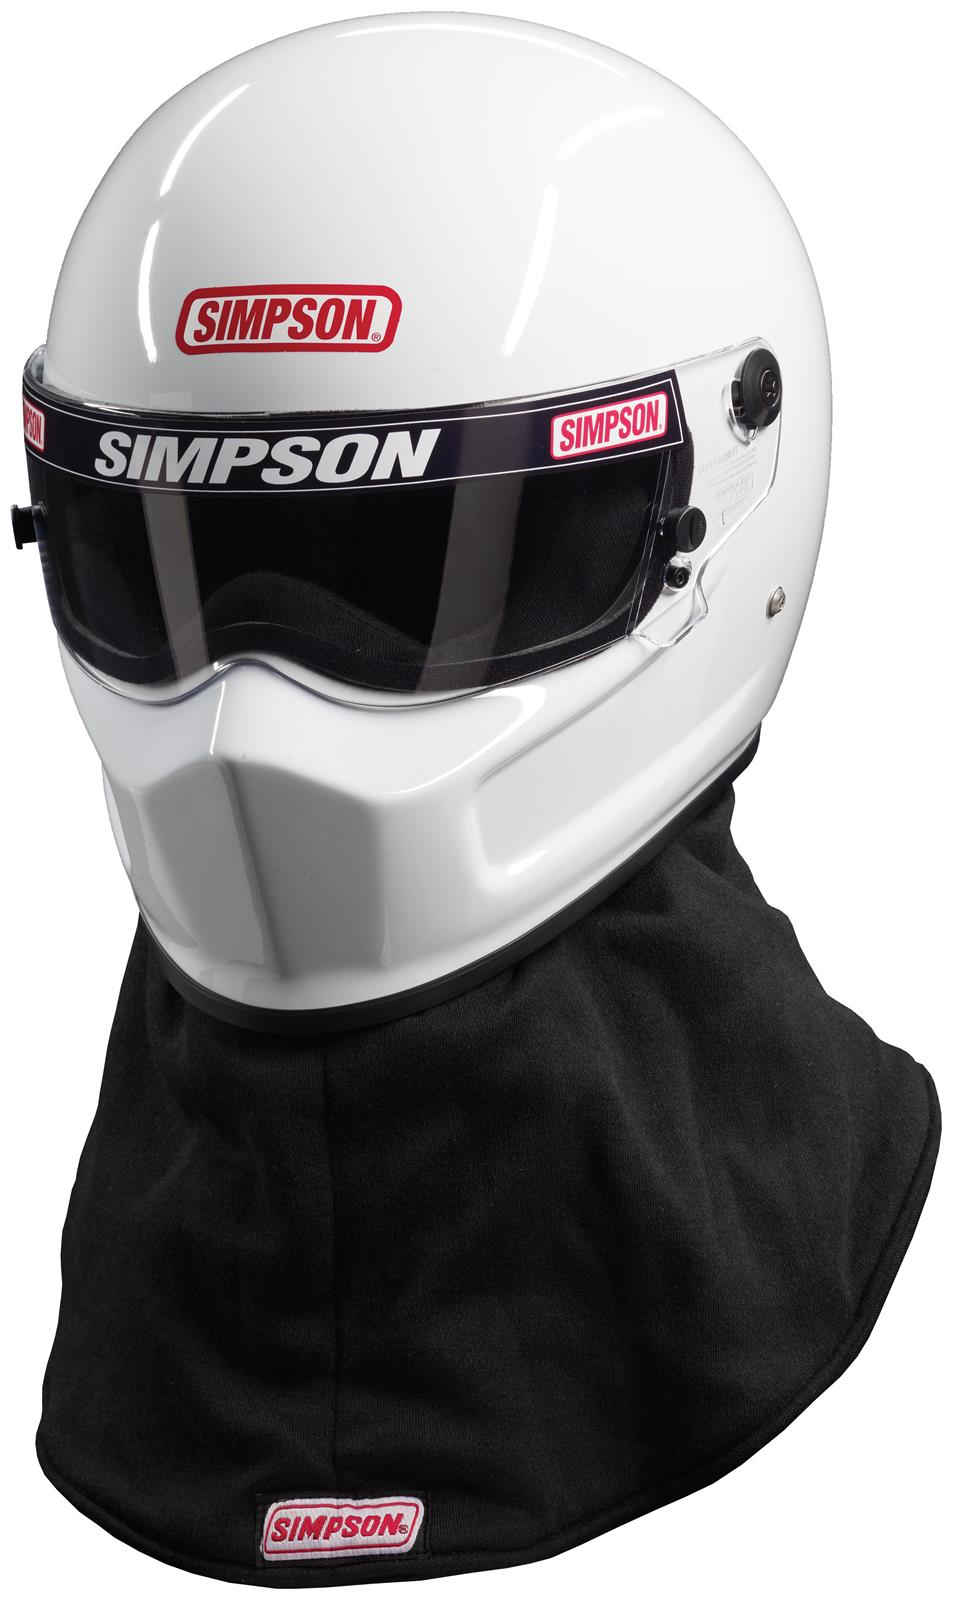 Simpson Bandit Series Helmets 6200001 F Free Shipping On Orders